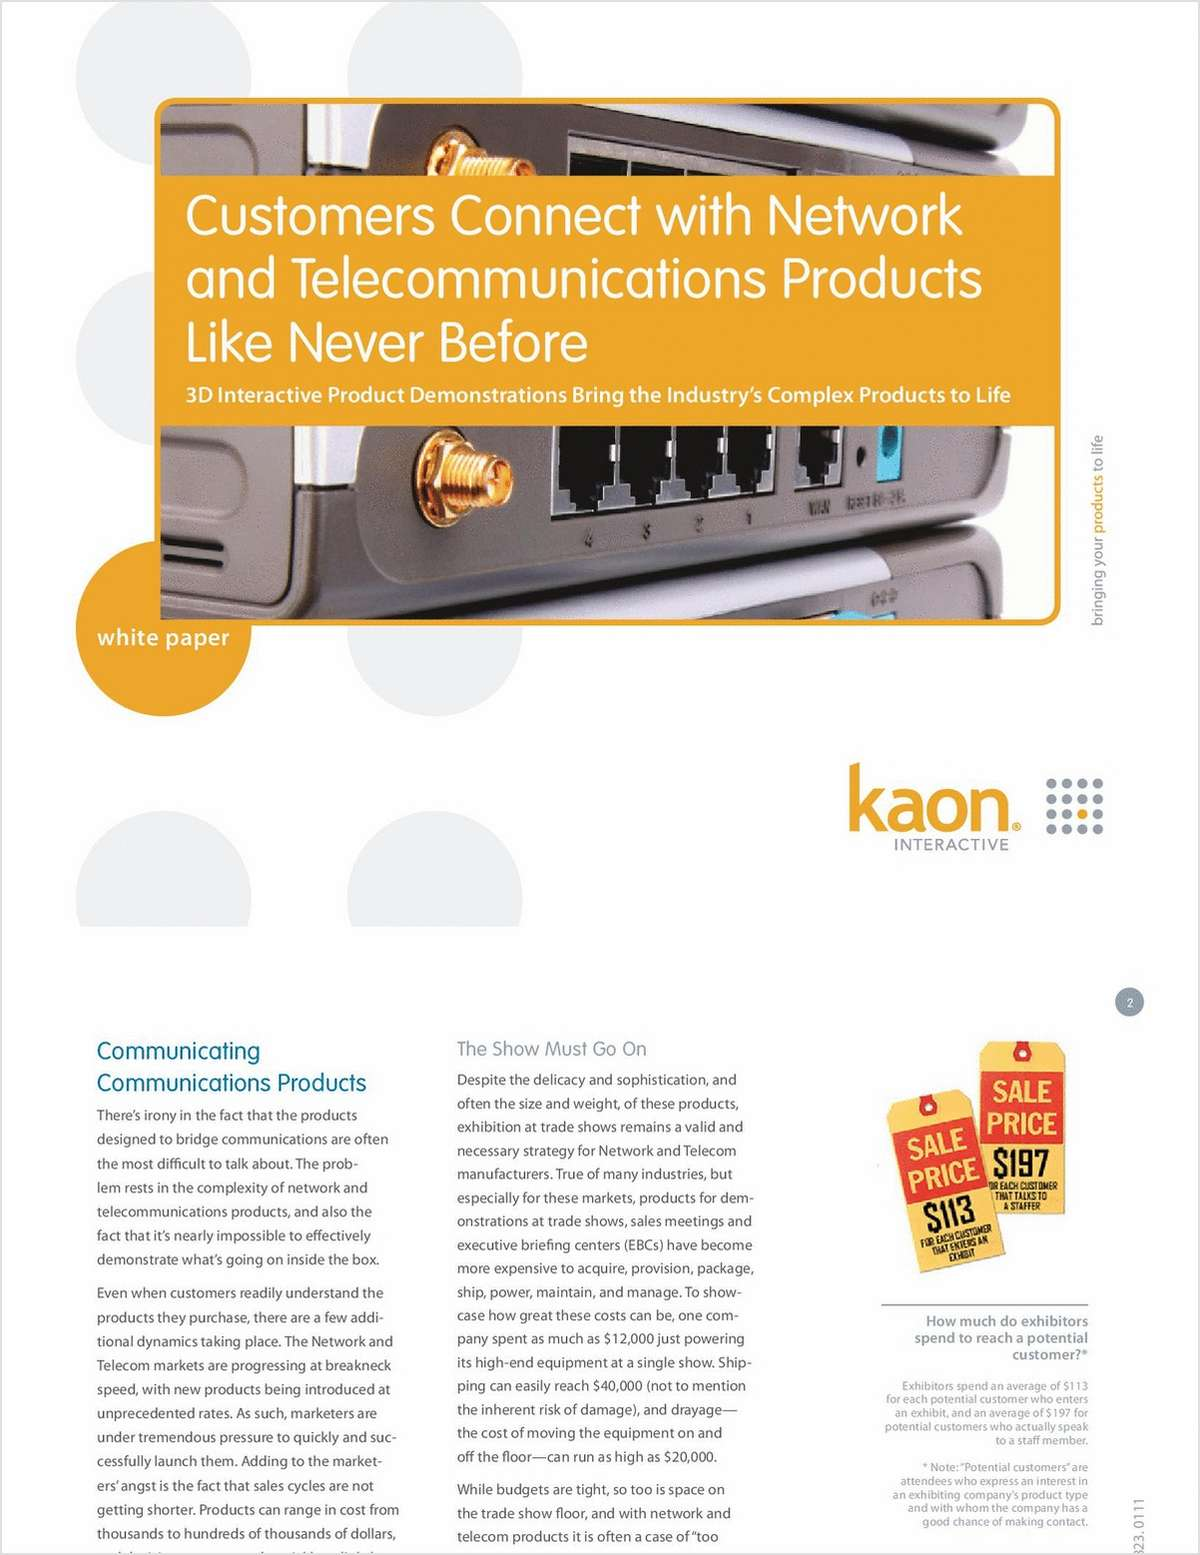 Customers Connect with Network and Telecom Products Like Never Before